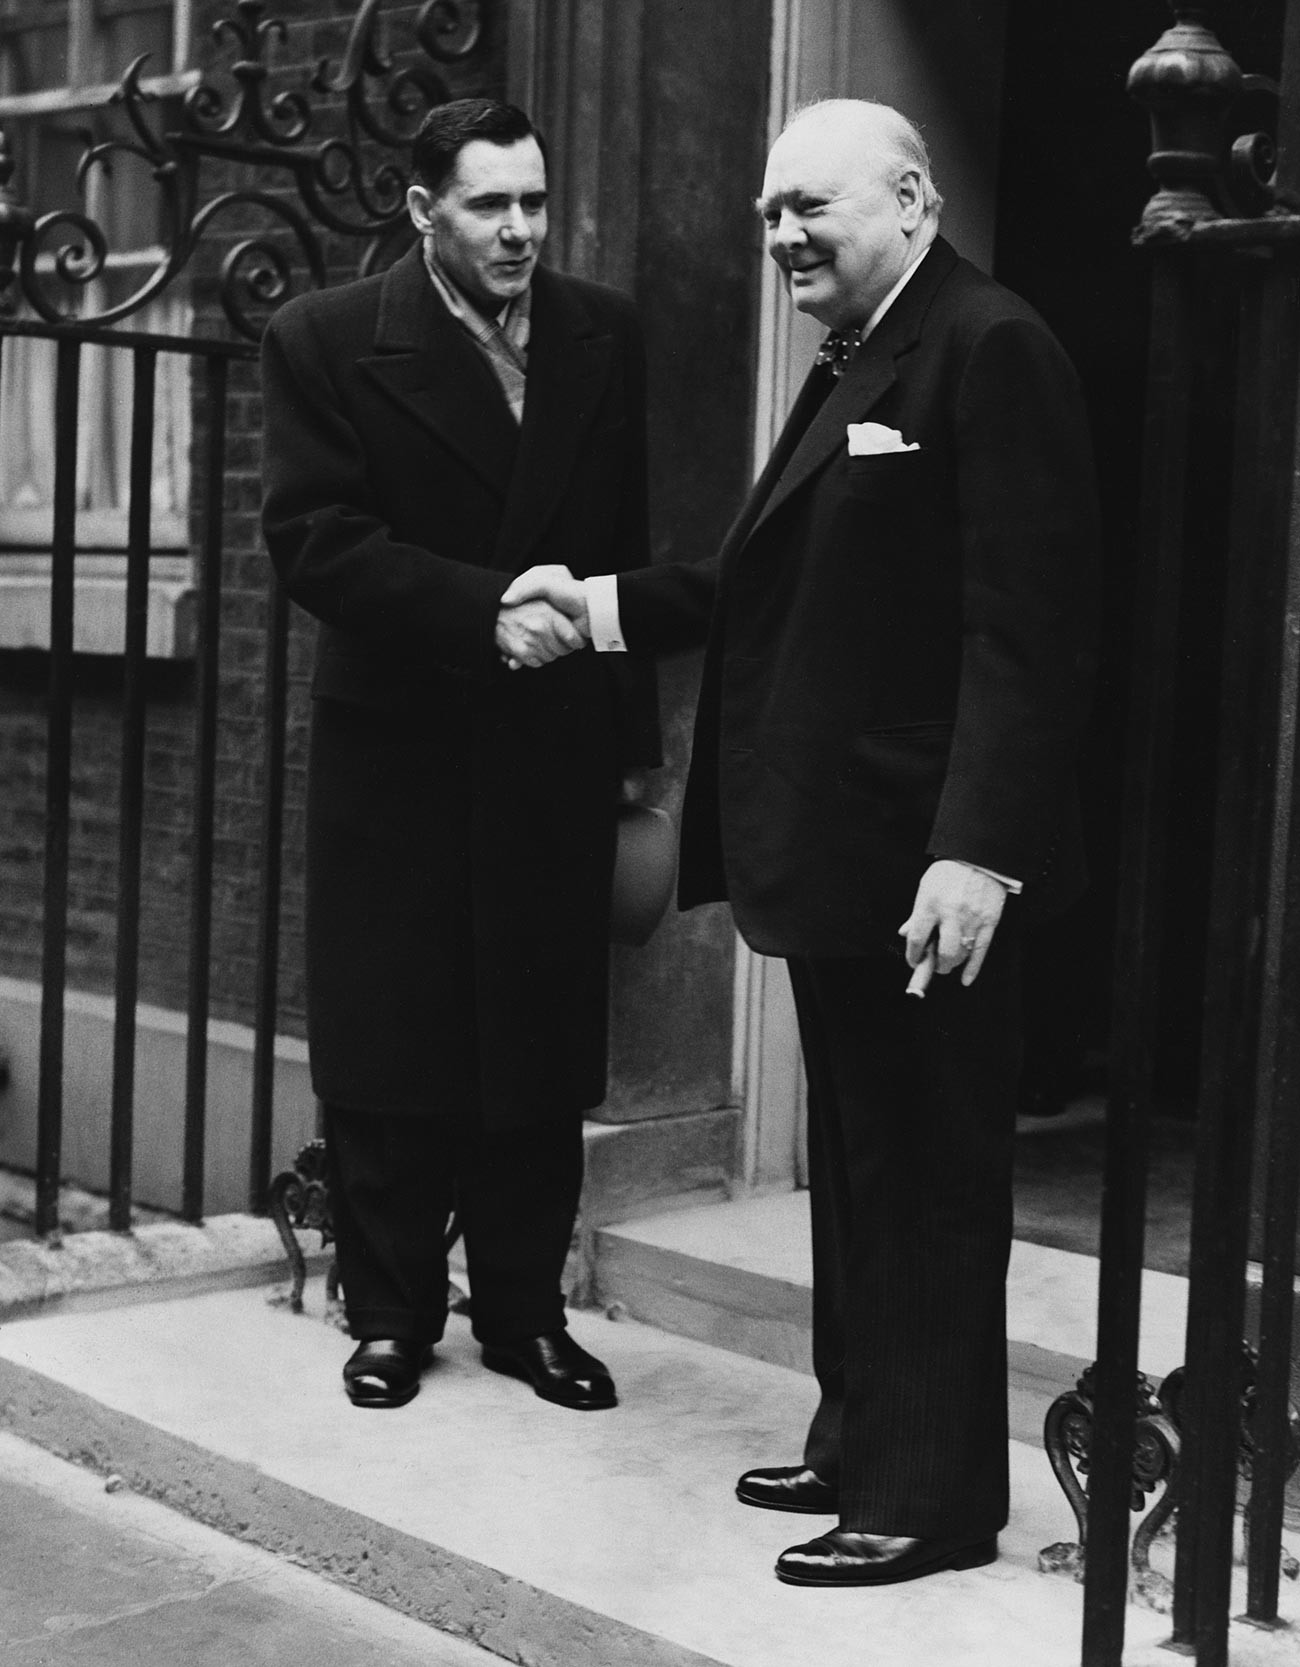 Andrei Gromyko, who became the Russian Ambassador to the UK in 1952, shakes hands with the Conservative Prime Minister, Winston Churchill outside 10 Downing Street.